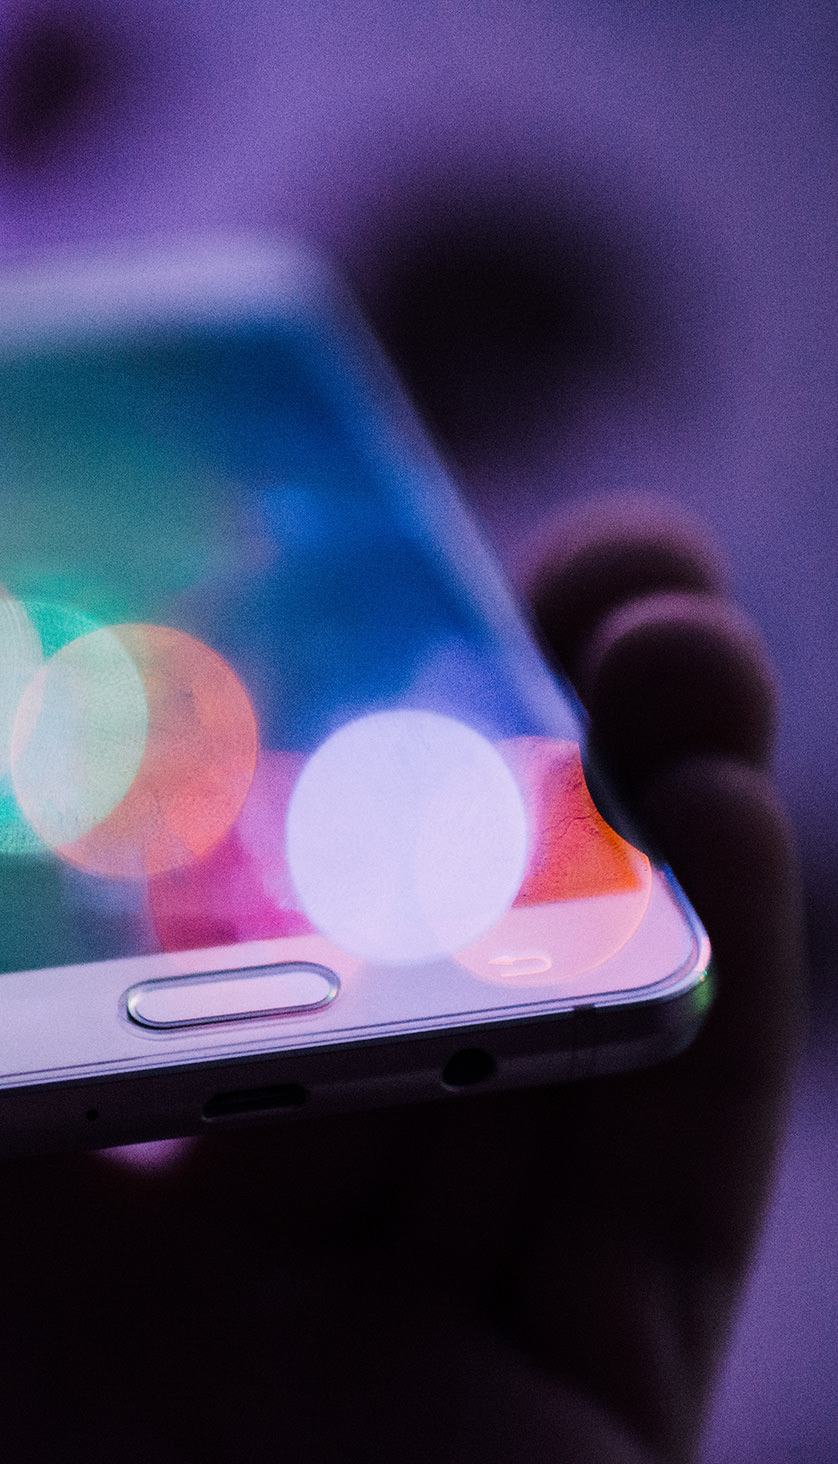 A close up artistic image of a mobile phone